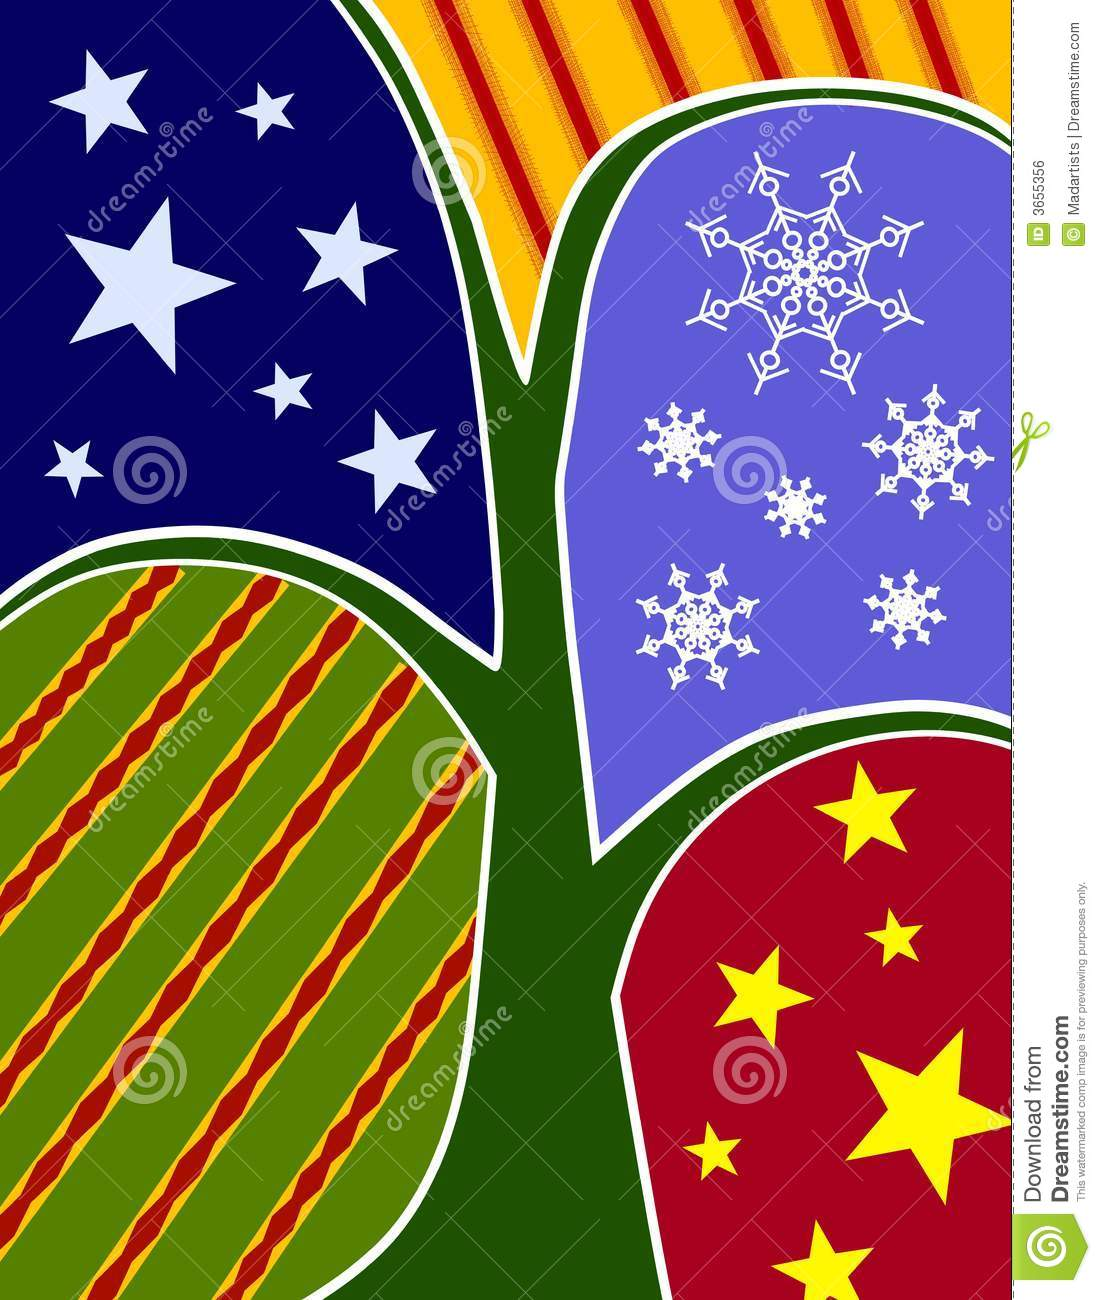 Abstract Christmas Tree Collage Card Royalty Free Stock